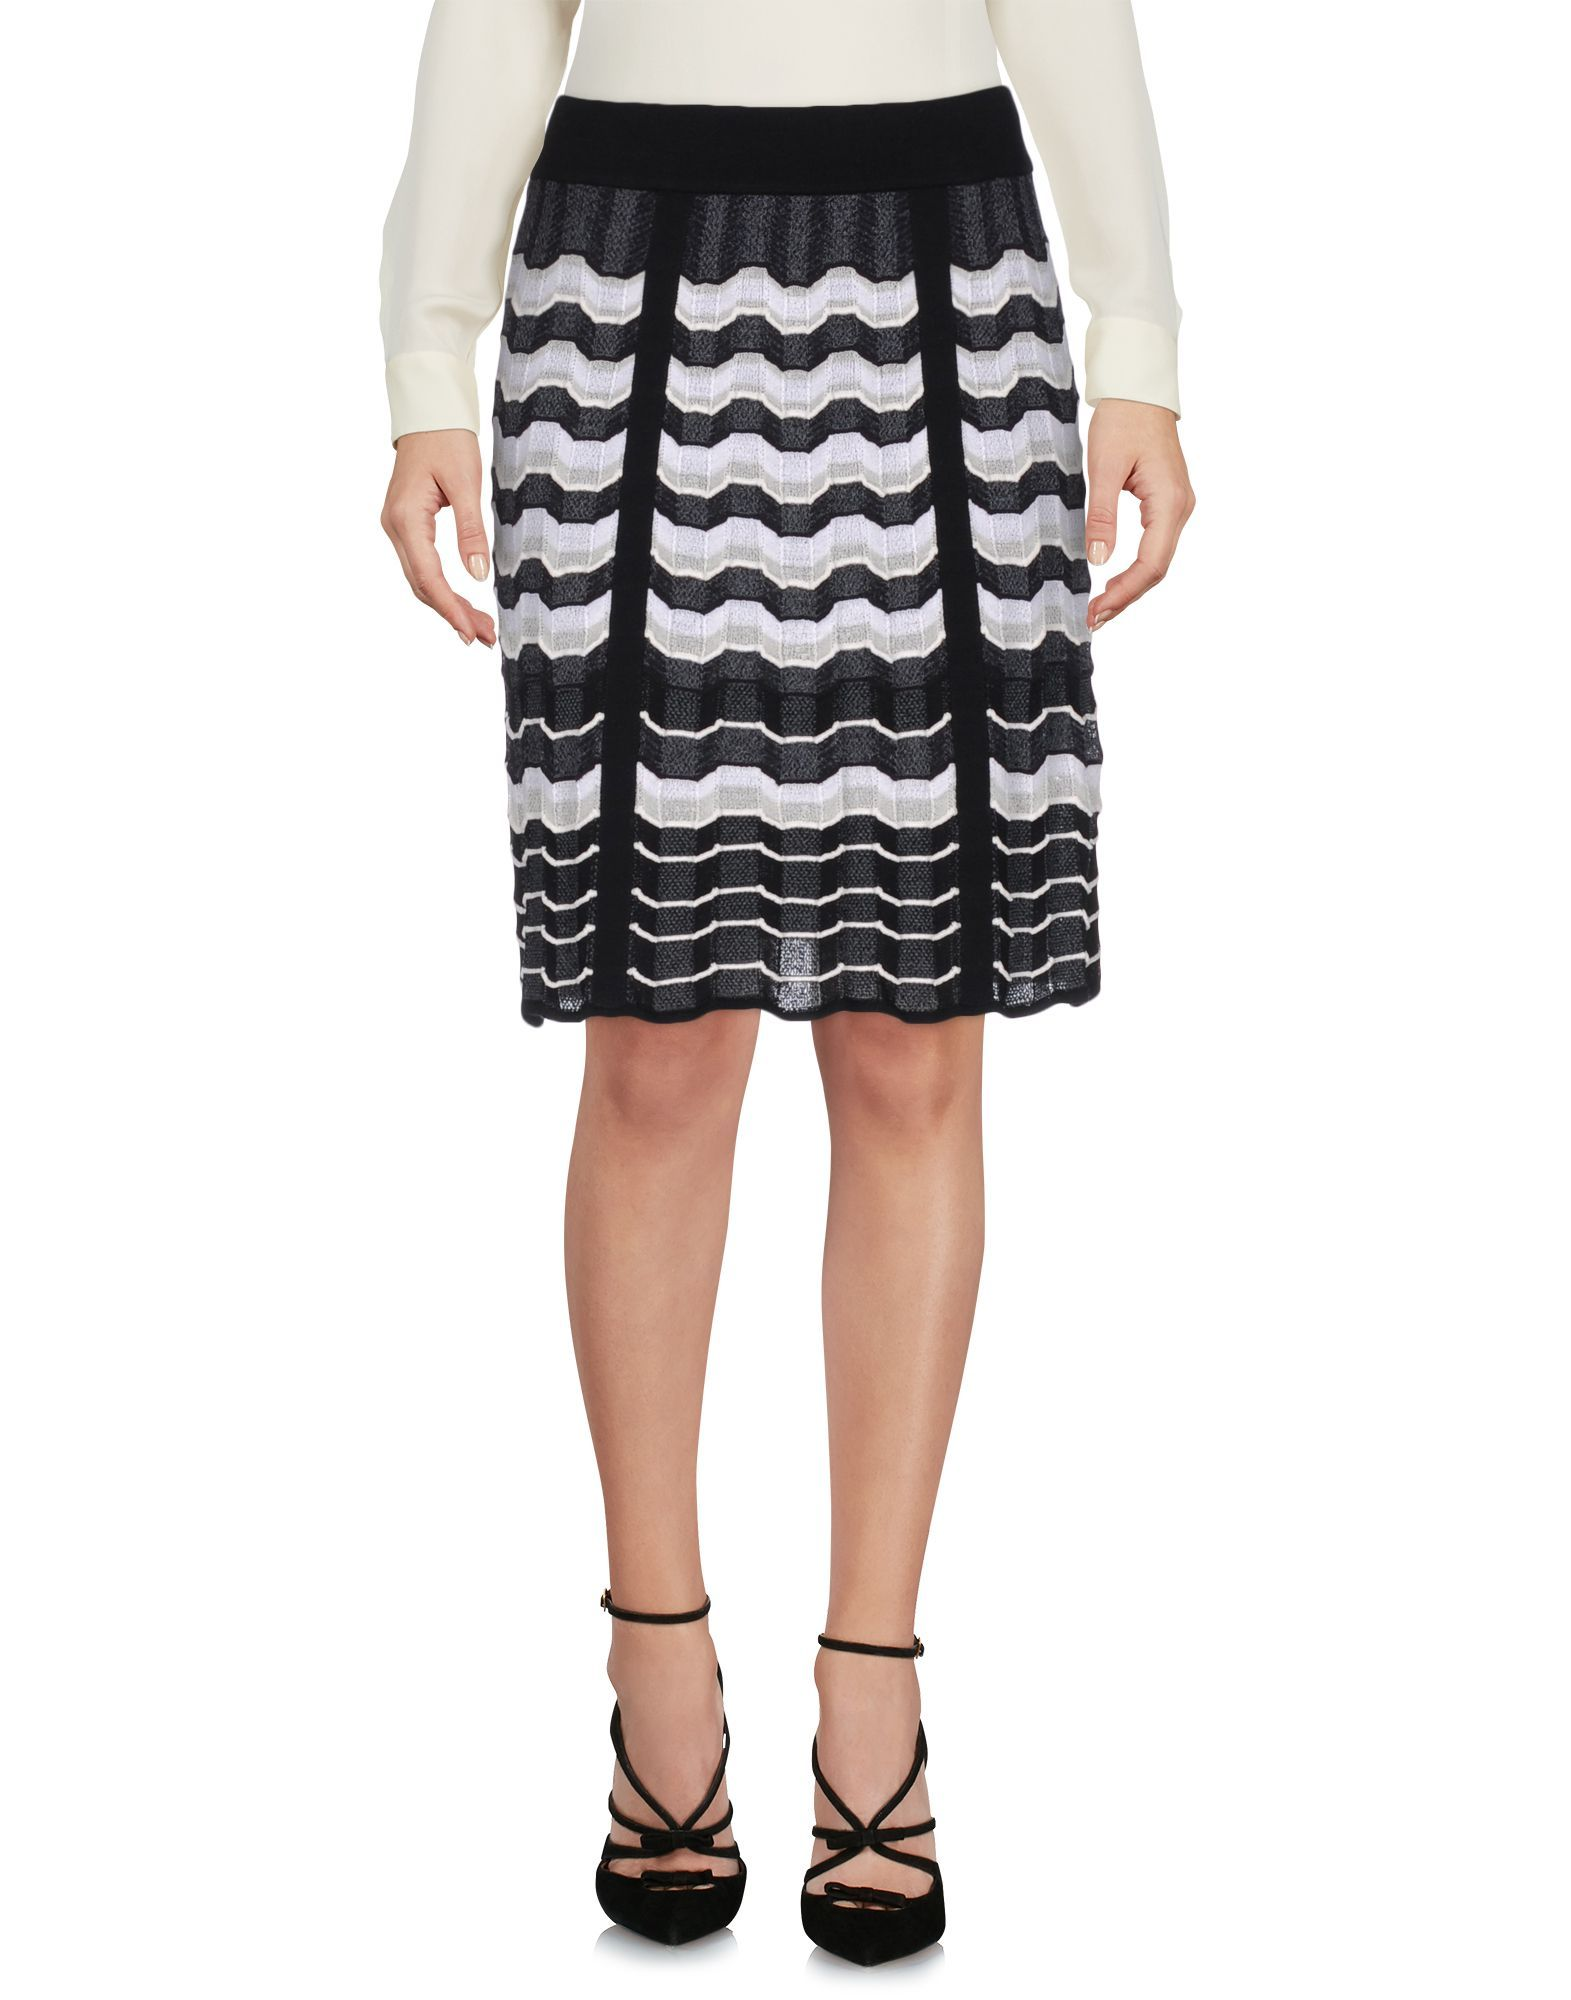 In China Online SKIRTS - Knee length skirts M Missoni Deals Cheap Price JW4UdV